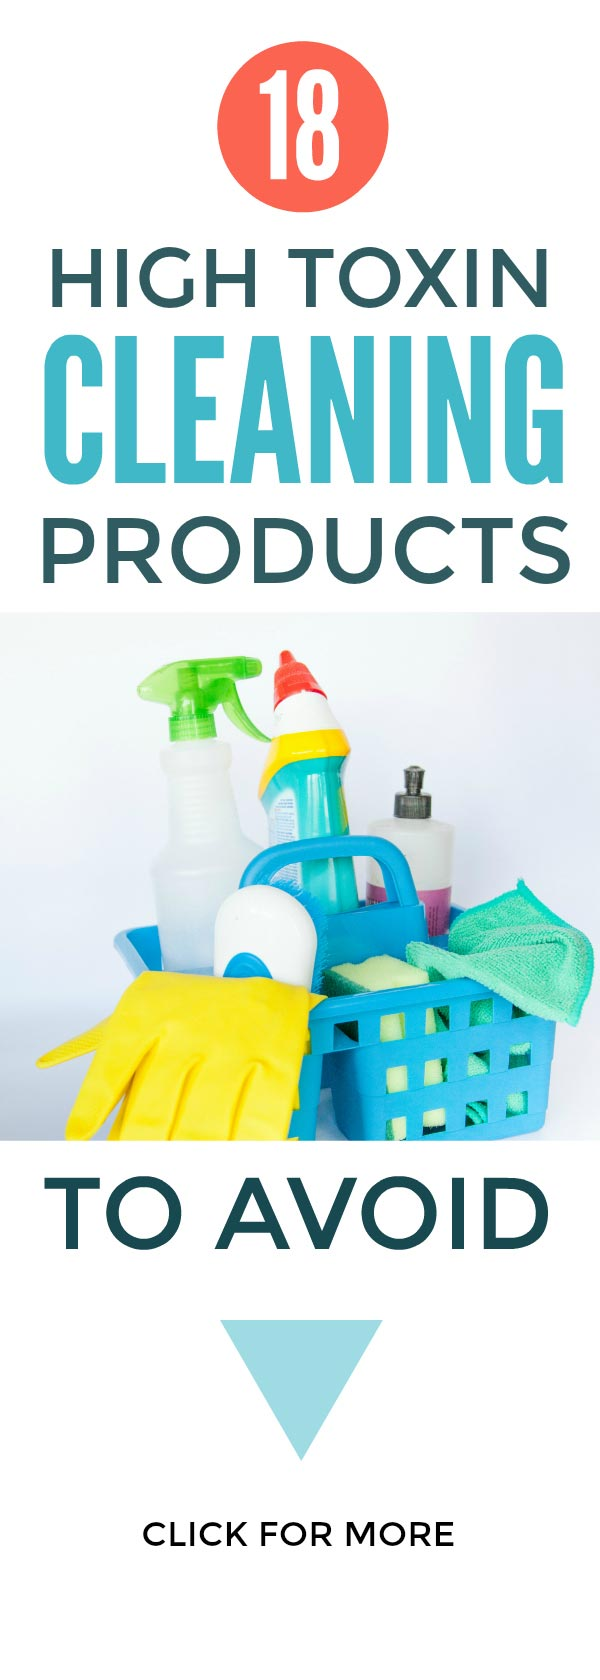 Do you really know what dodgy toxins are lurking in your everyday cleaning stuff? Read more to find out about the chemicals in your cleaning products and learn easy ways to get them out of your home ... #chemicalfree #cleaning #nontoxic #naturalcleaning #naturalliving